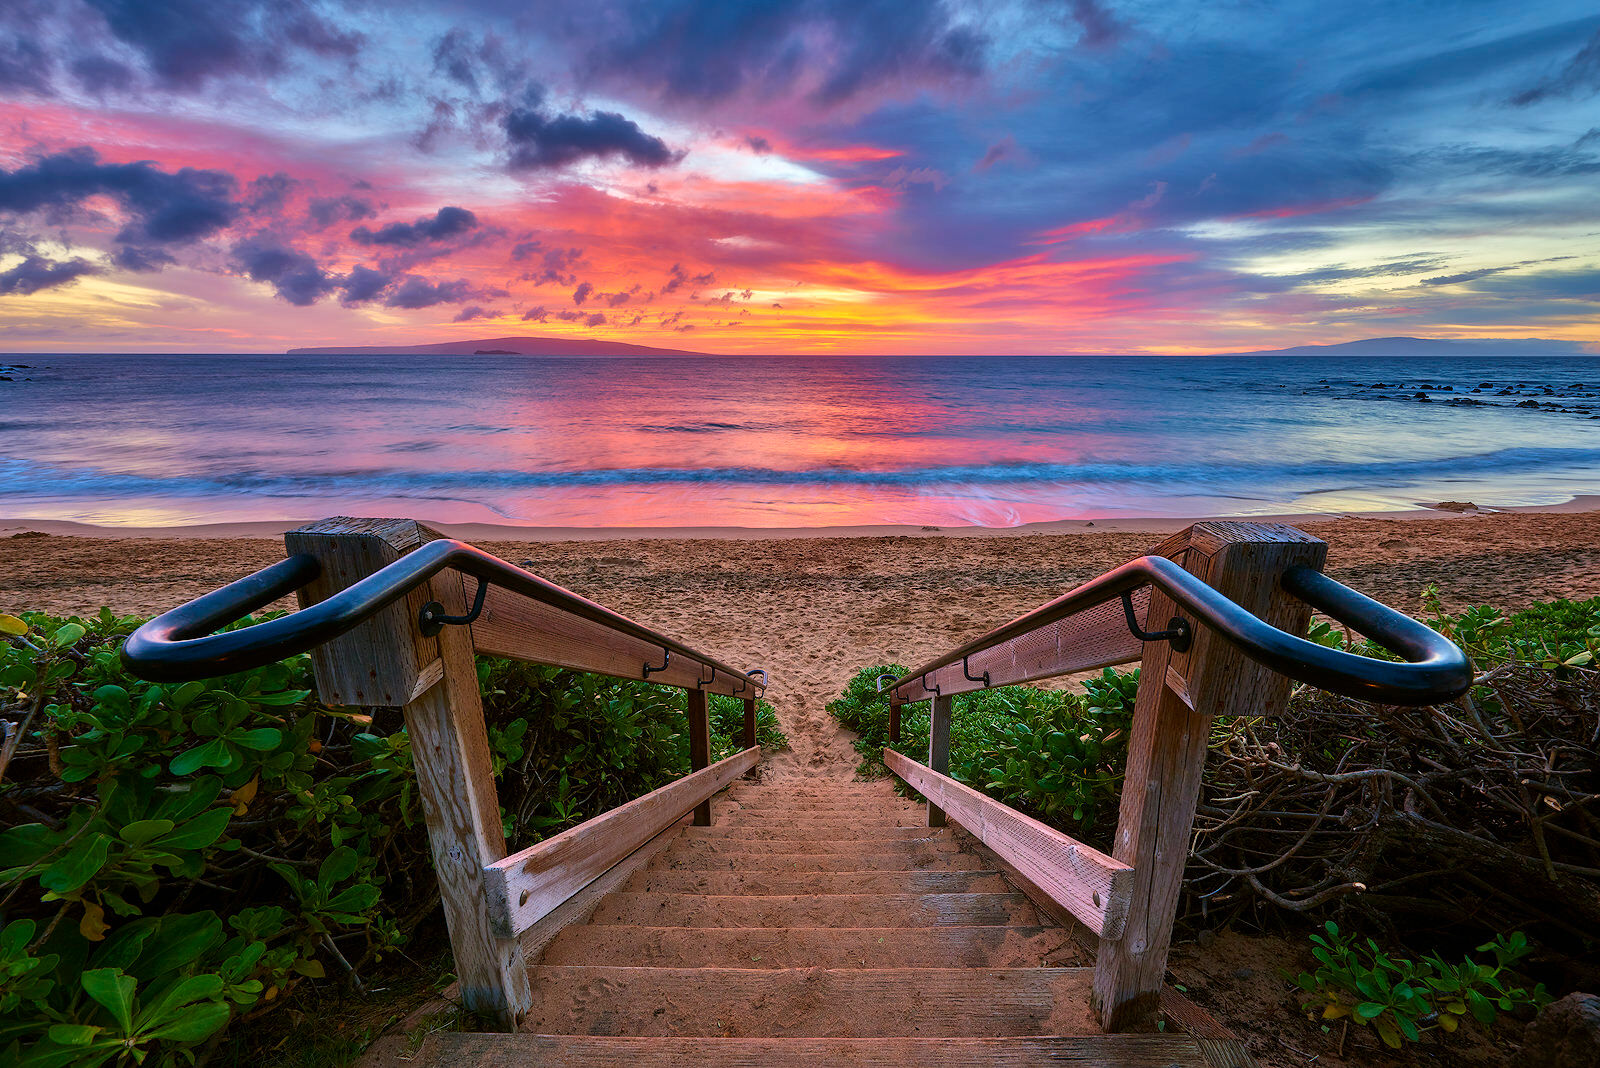 Looking down a beach staircase on to Ulua Beach in Wailea at sunset on the island of Maui.  Photographed by Andrew Shoemaker